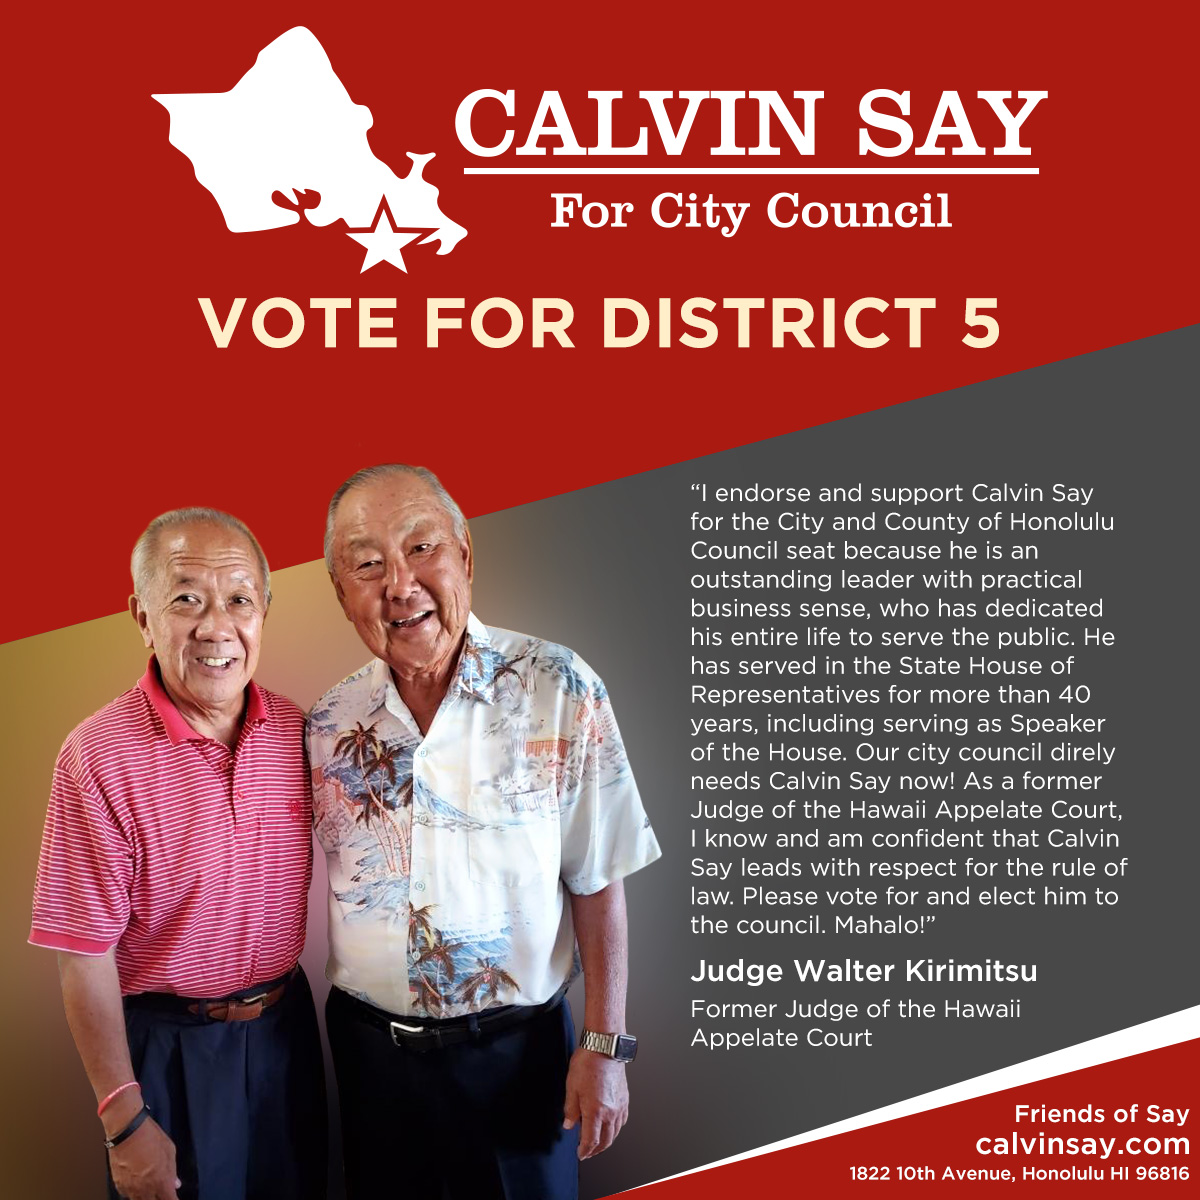 Judge Walter Kirimitsu's kind message in support of Speaker Emeritus Calvin K.Y. Say for Honolulu City Council District V.